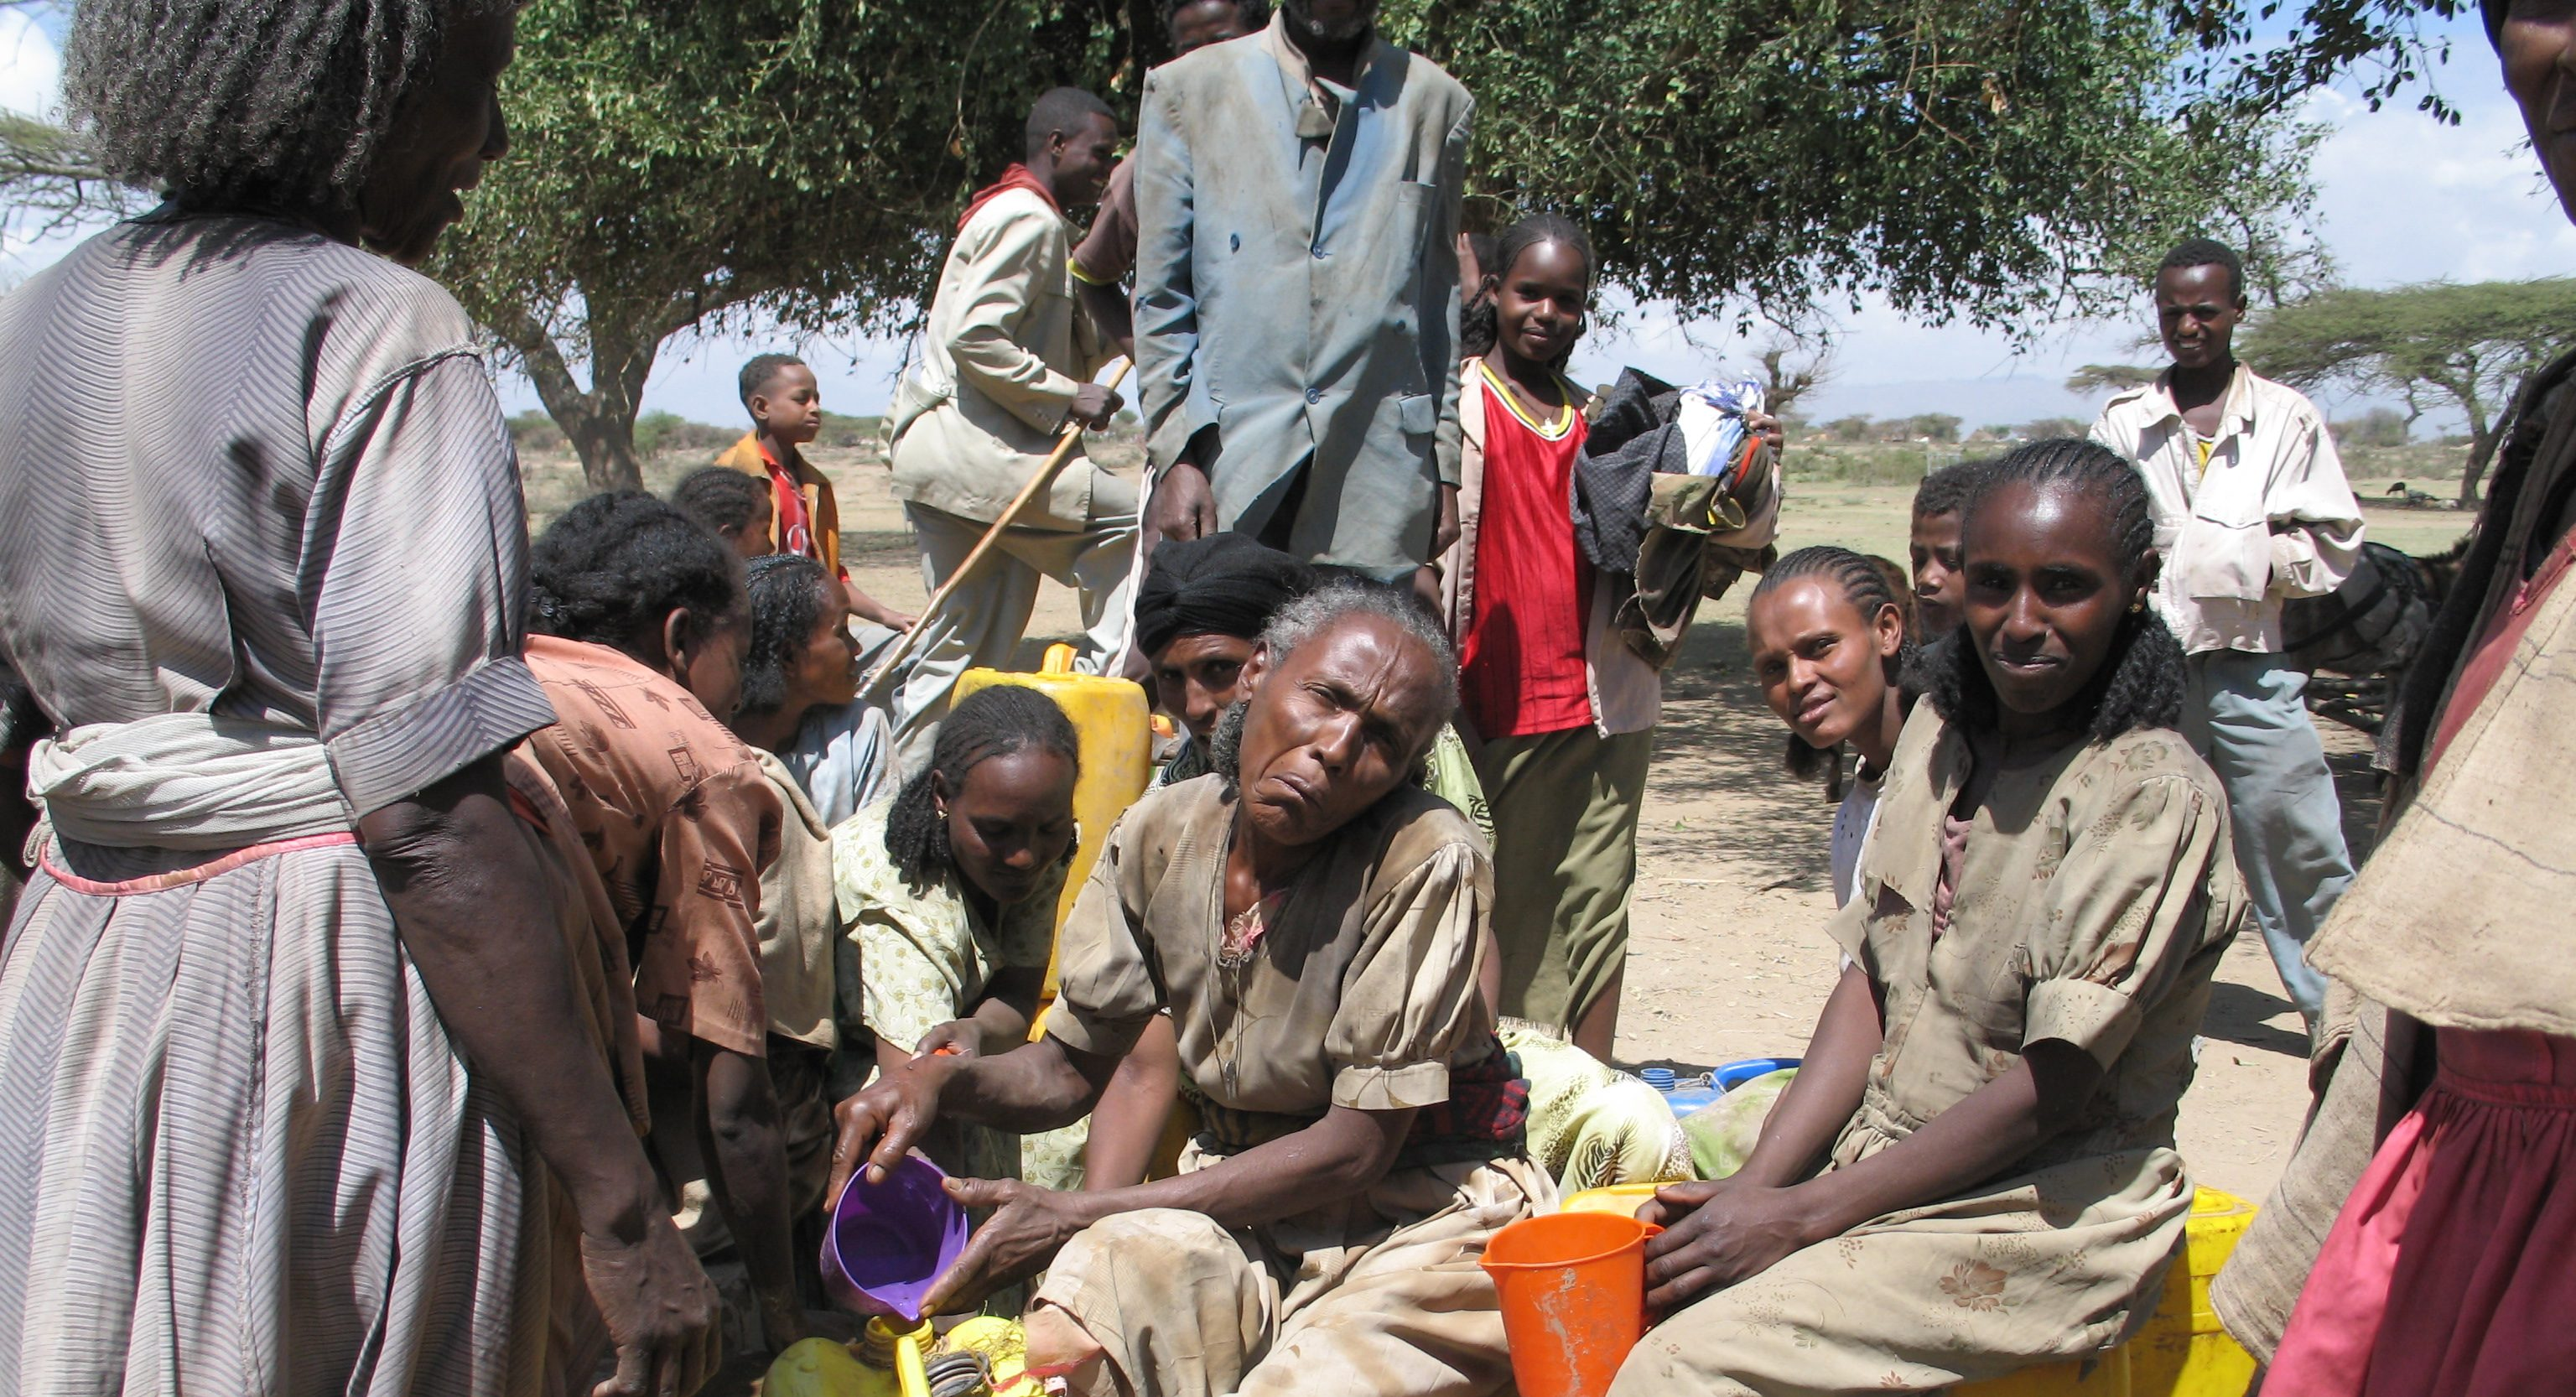 These refugees have fled government oppression in Eritrea